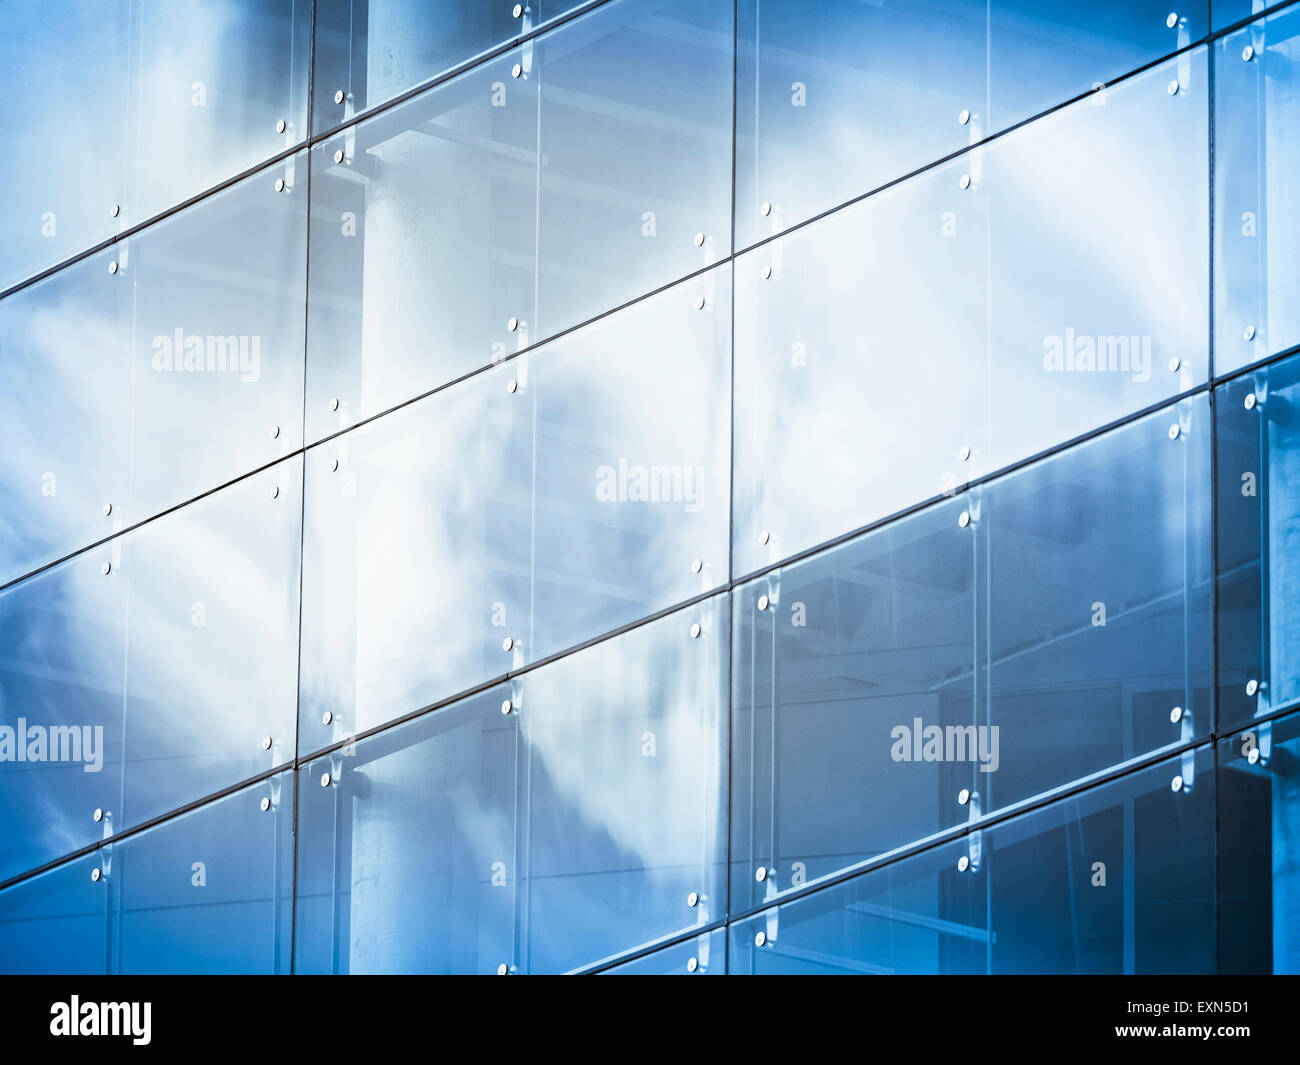 Germany Hamburg office building glass facade reflection of